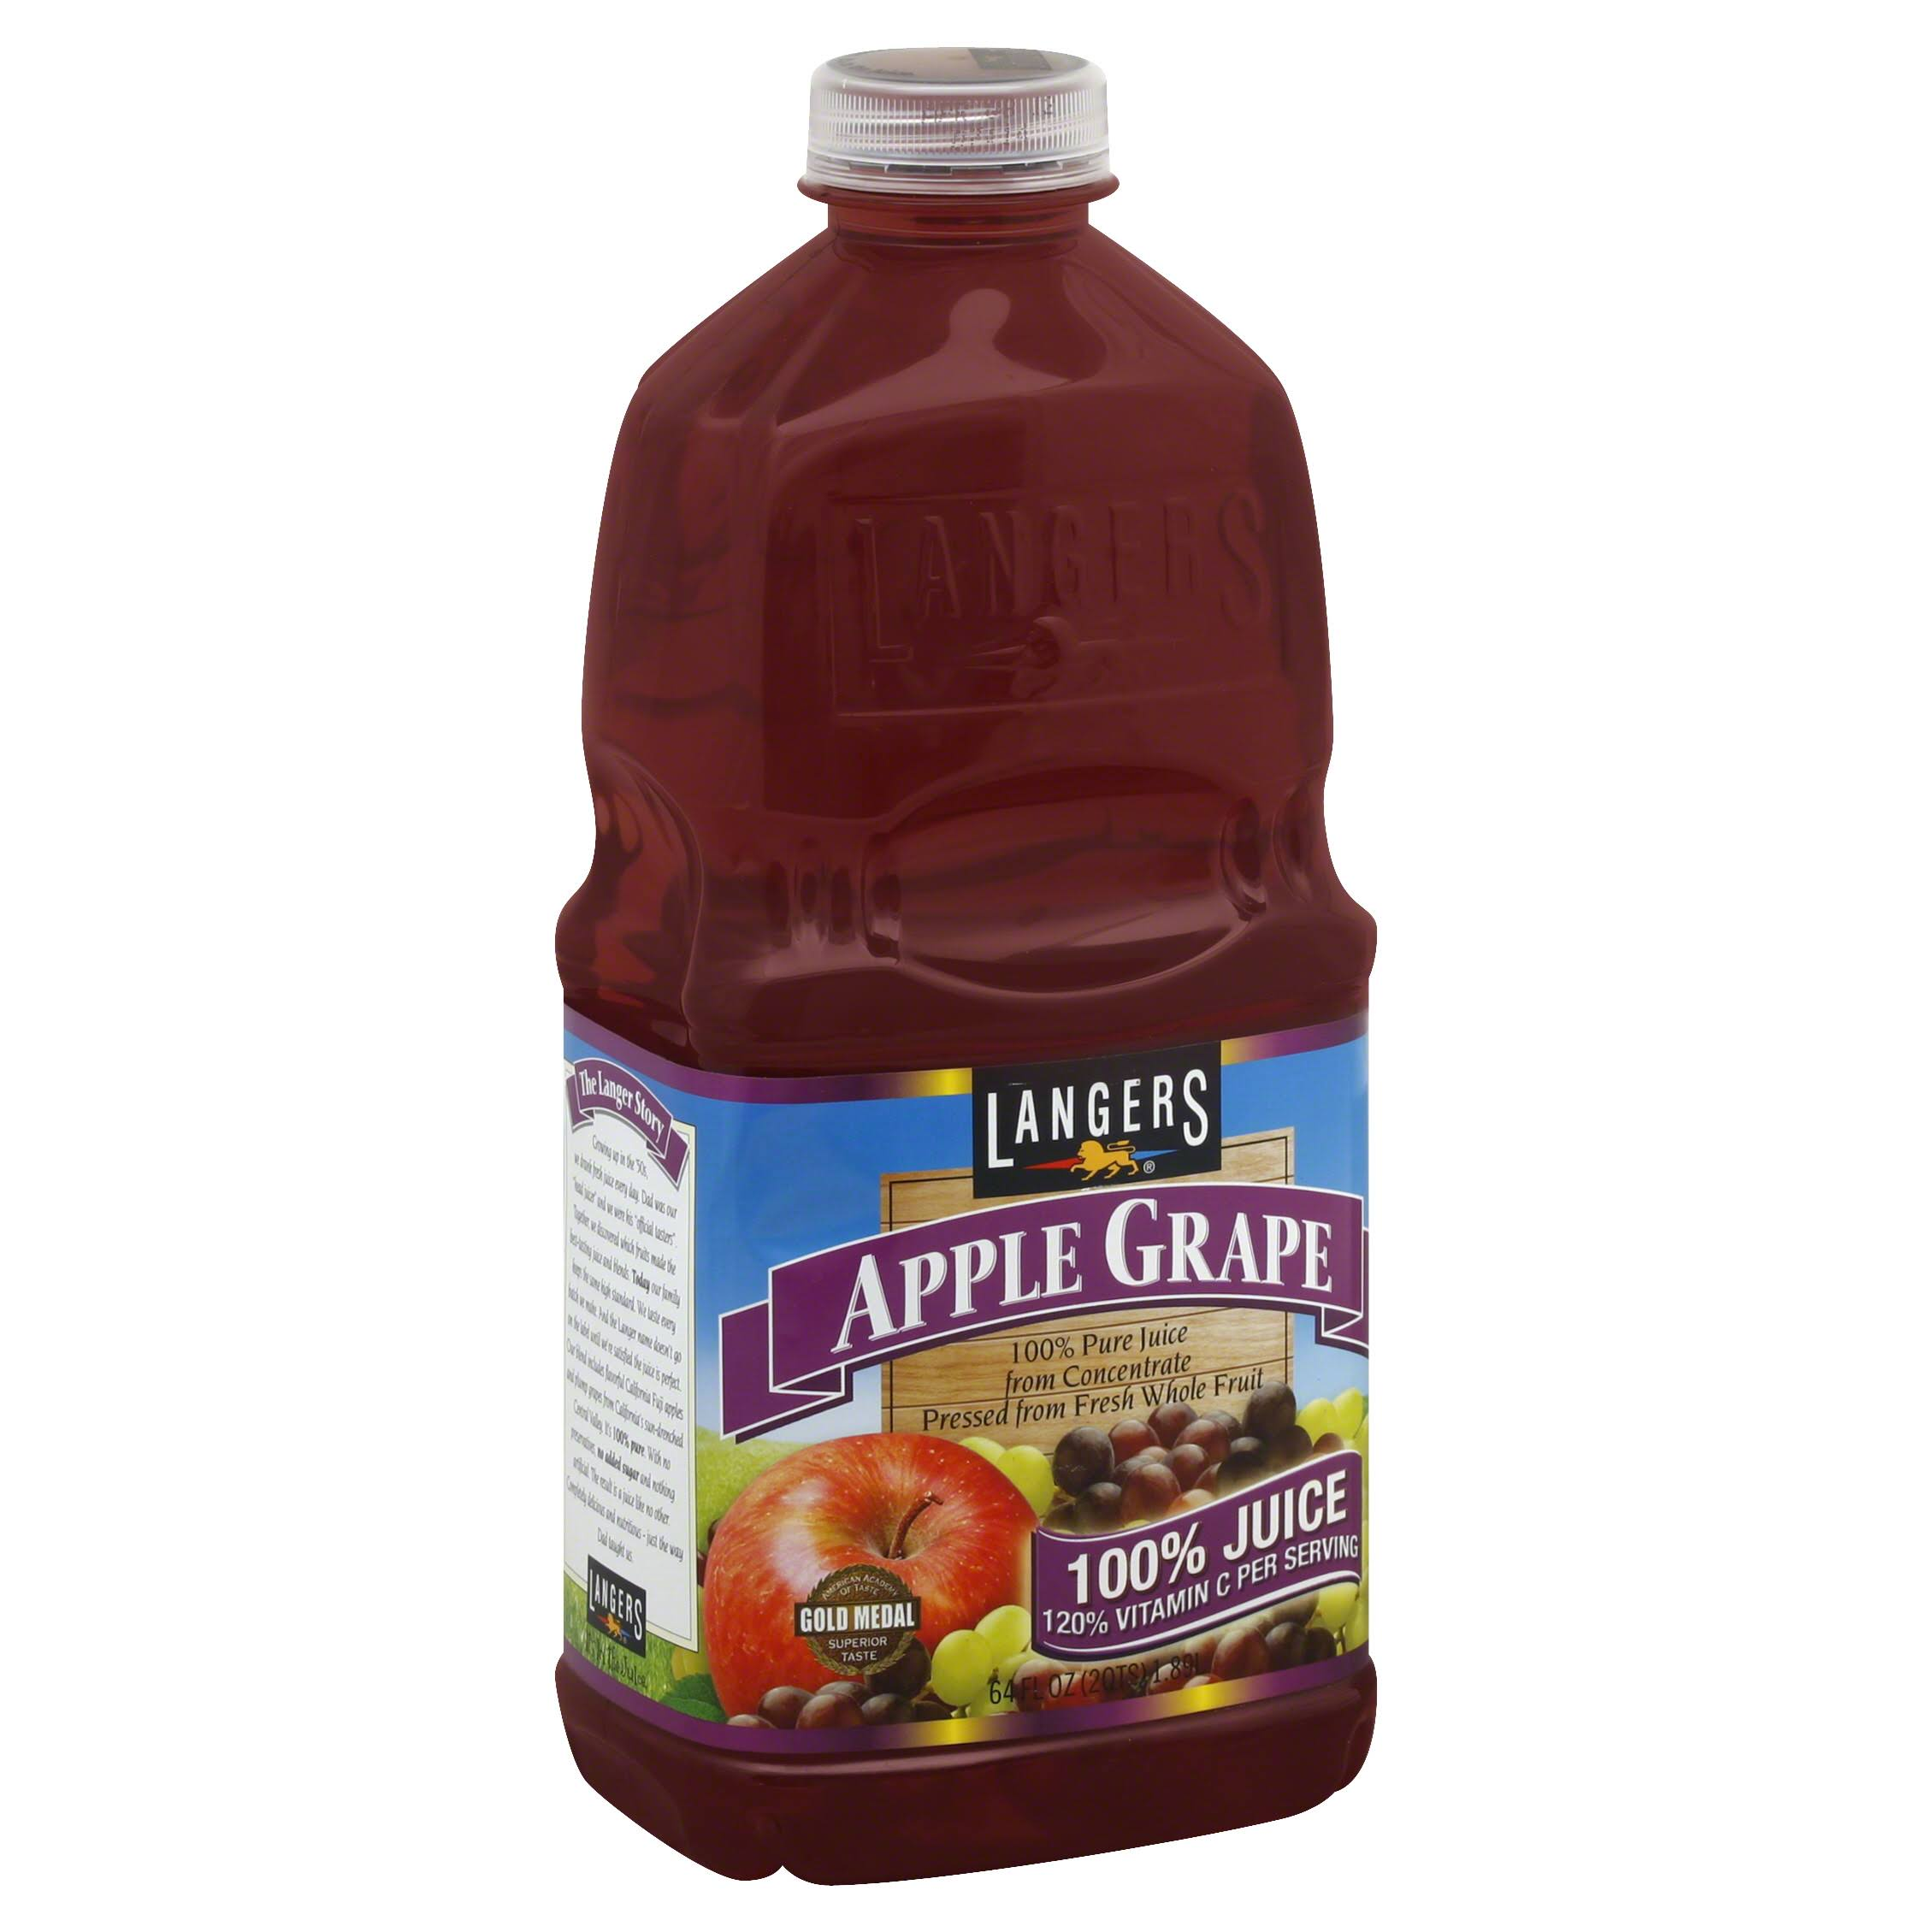 Langers 100% Fruit Juice - Apple Grape With Vitamin C, 64oz